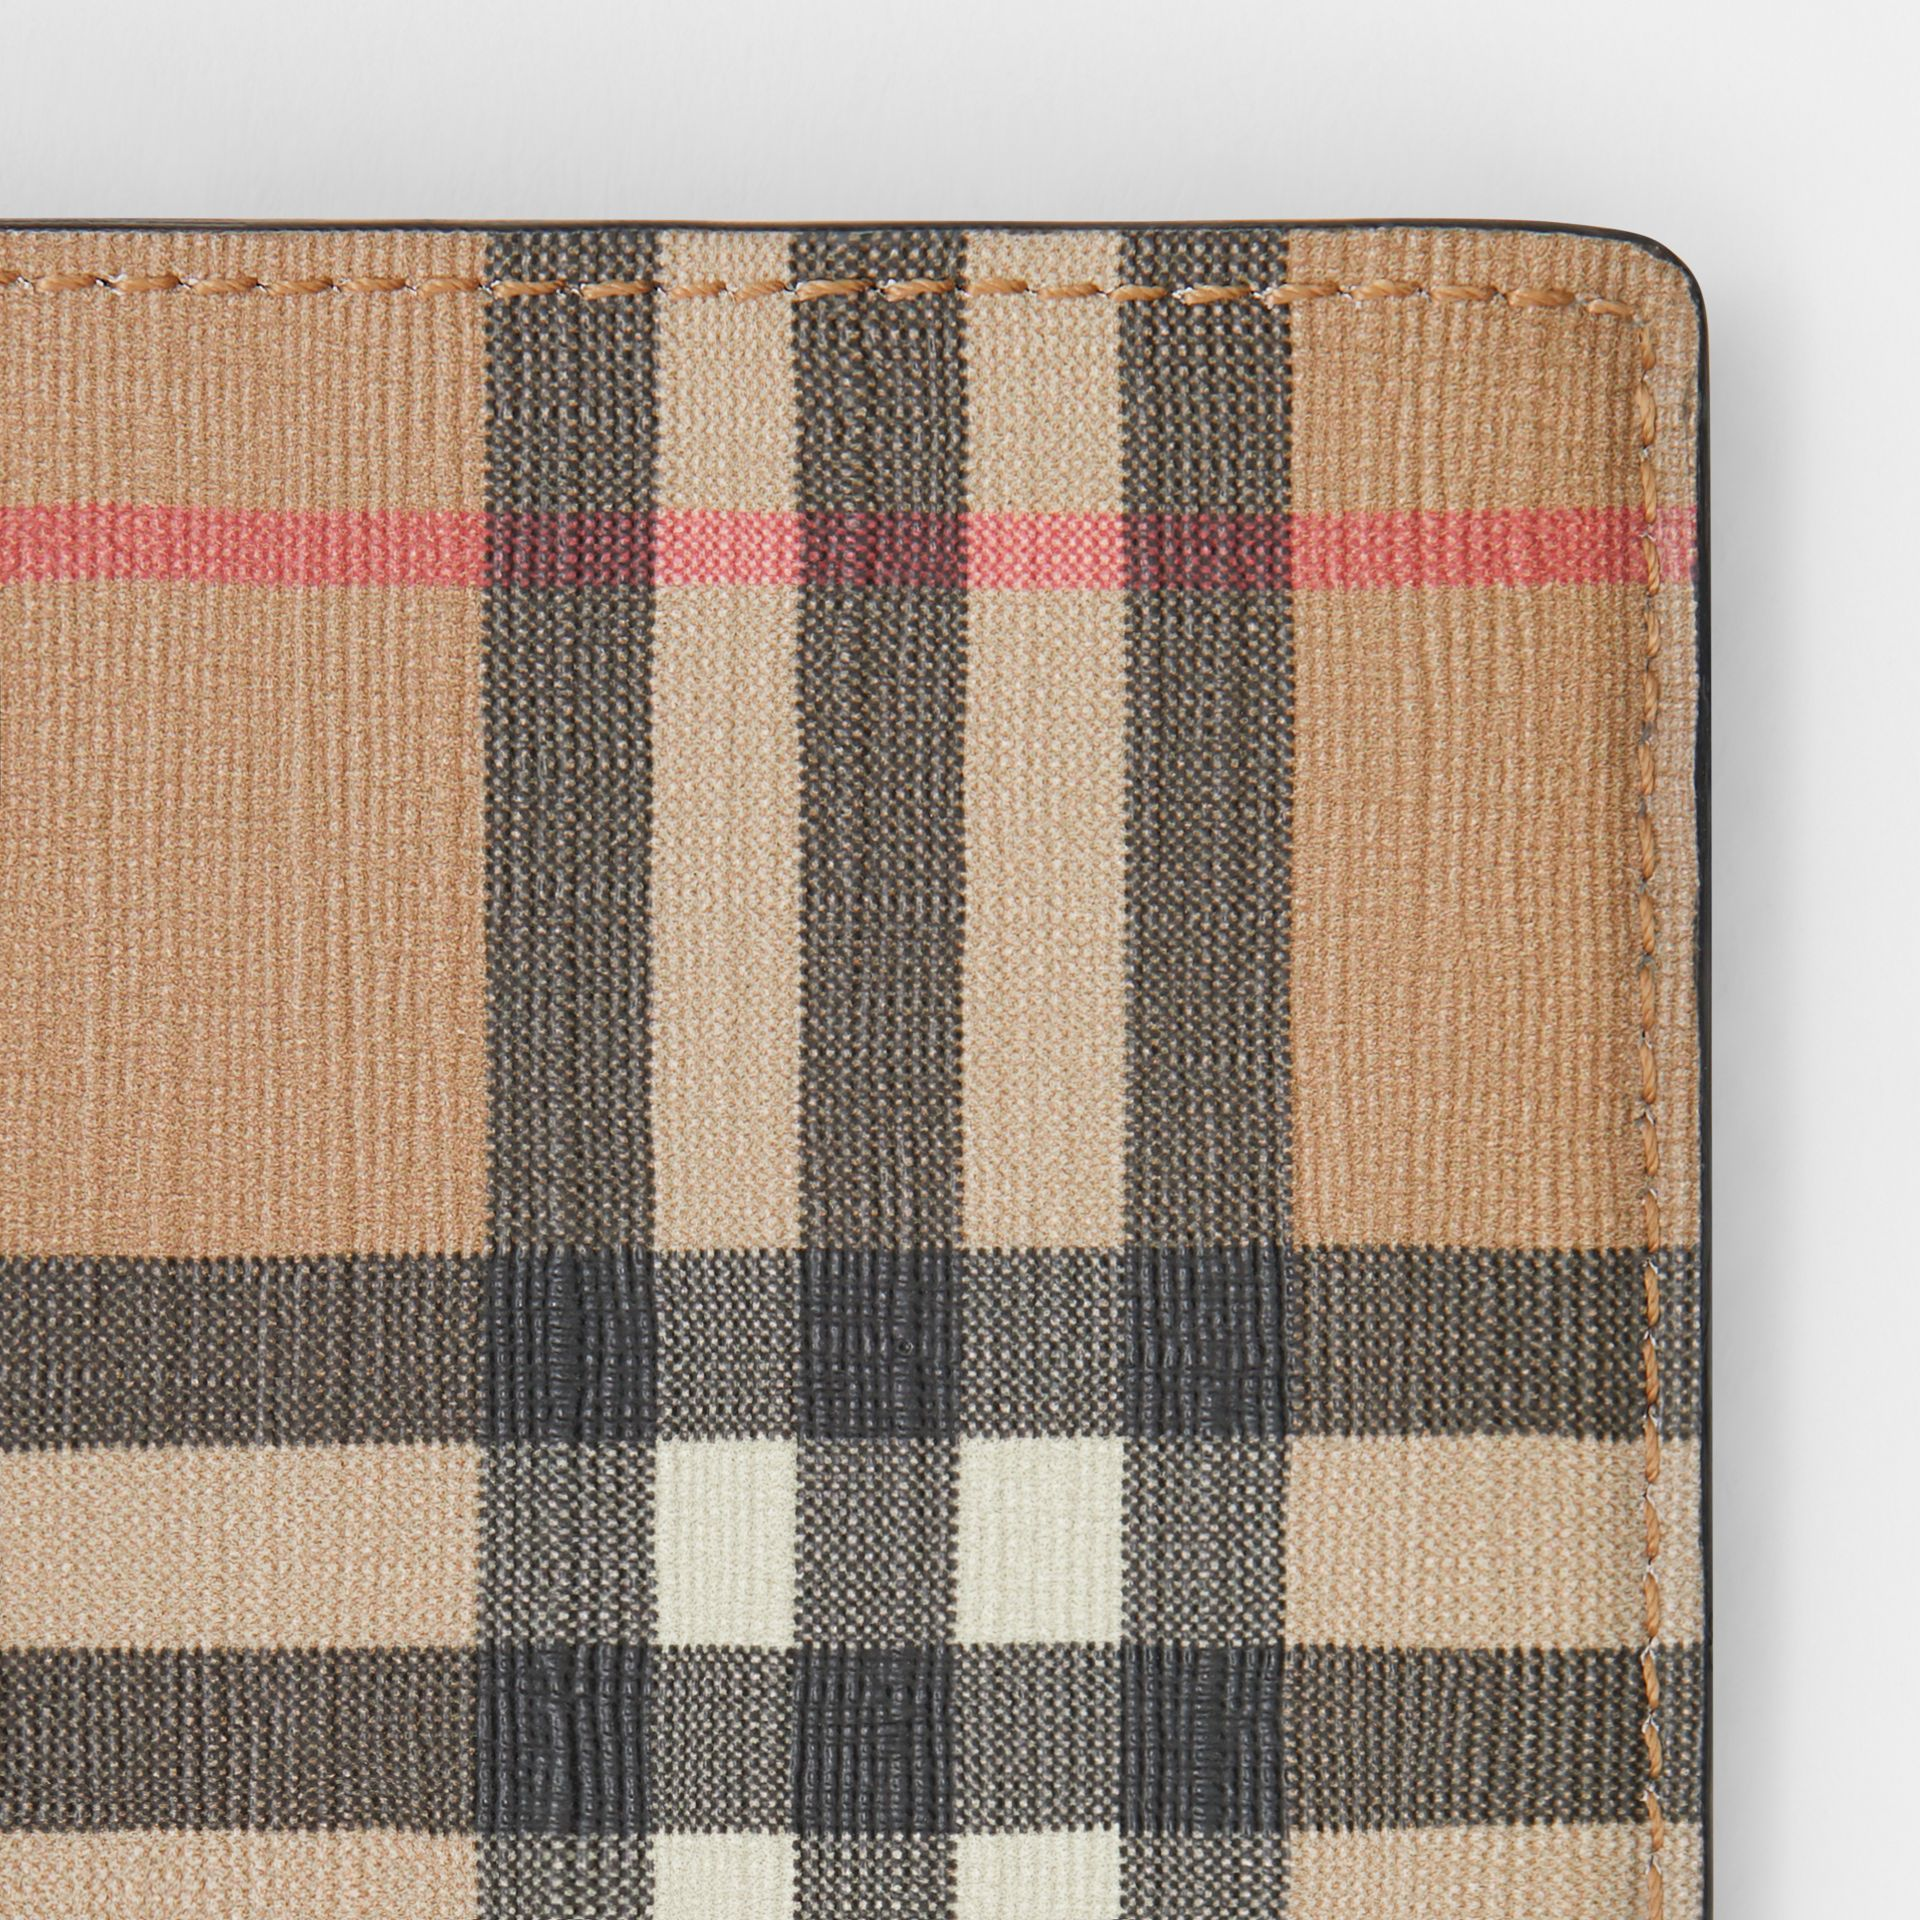 Vintage Check E-canvas International Bifold Wallet in Archive Beige - Men | Burberry United Kingdom - gallery image 1